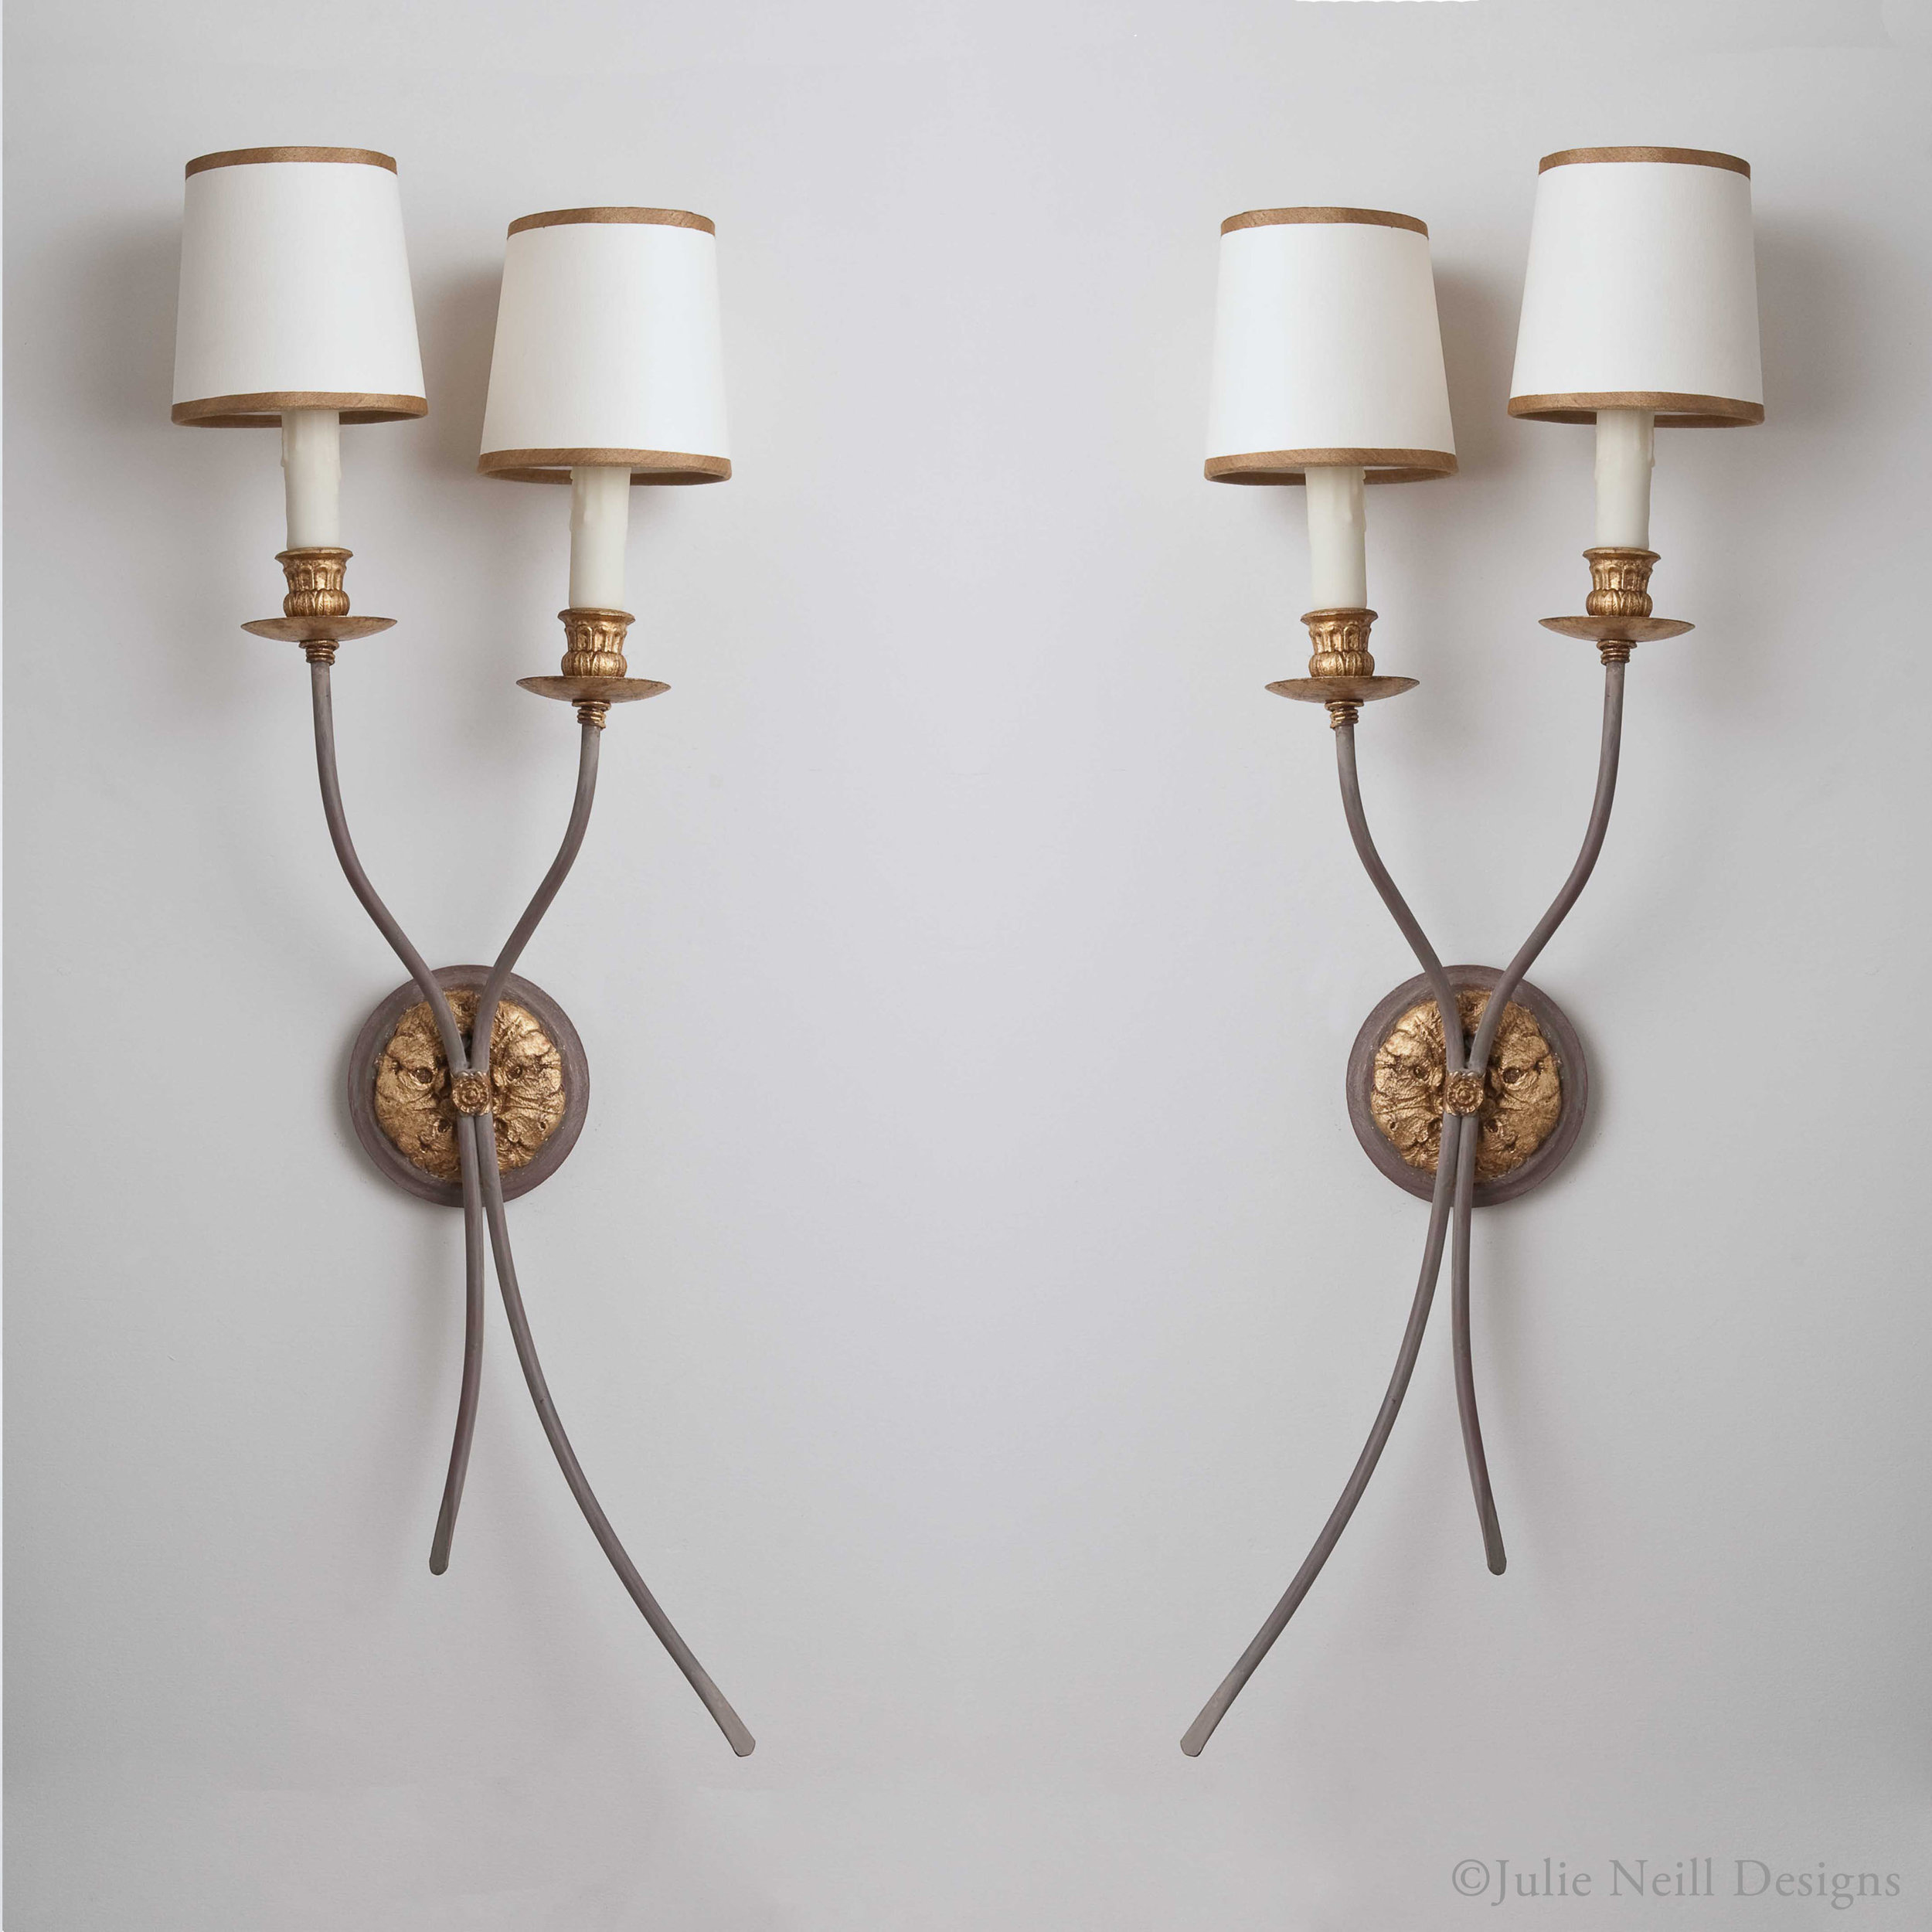 Caroline_Sconce_JulieNeillDesigns